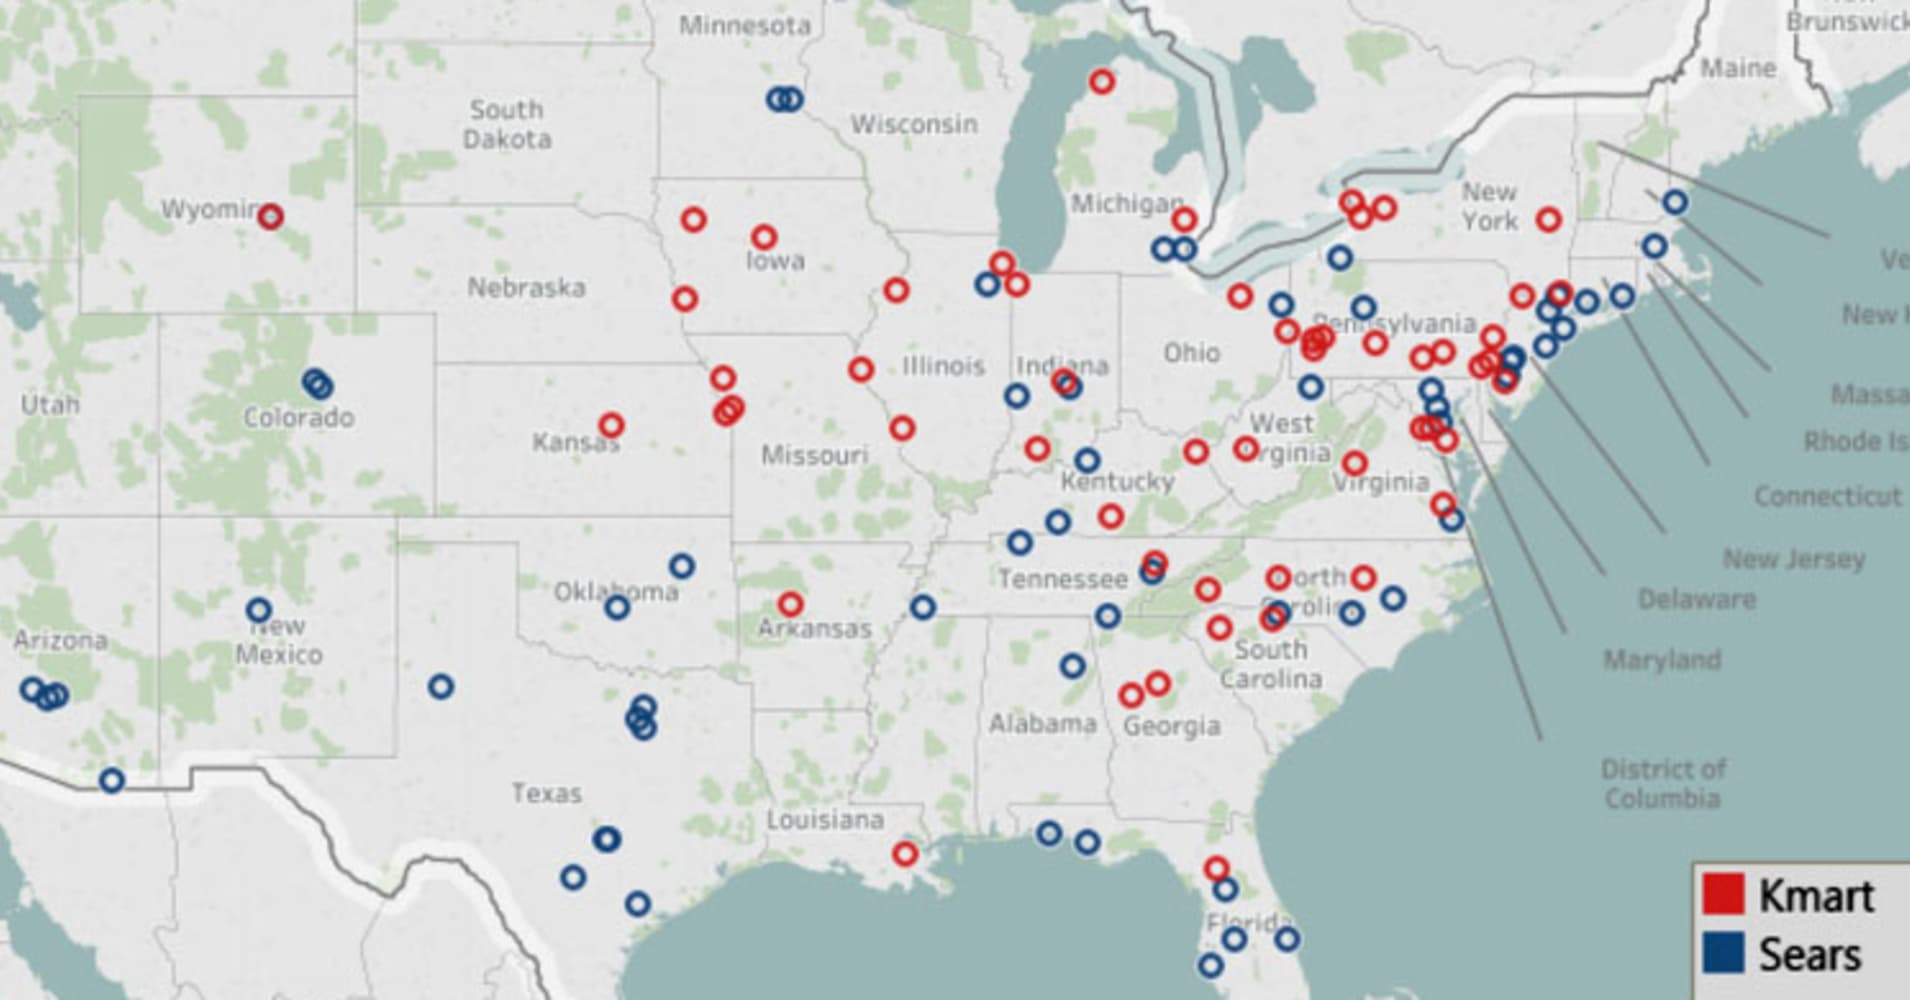 Here is a map of the 142 Sears and Kmart stores set to close